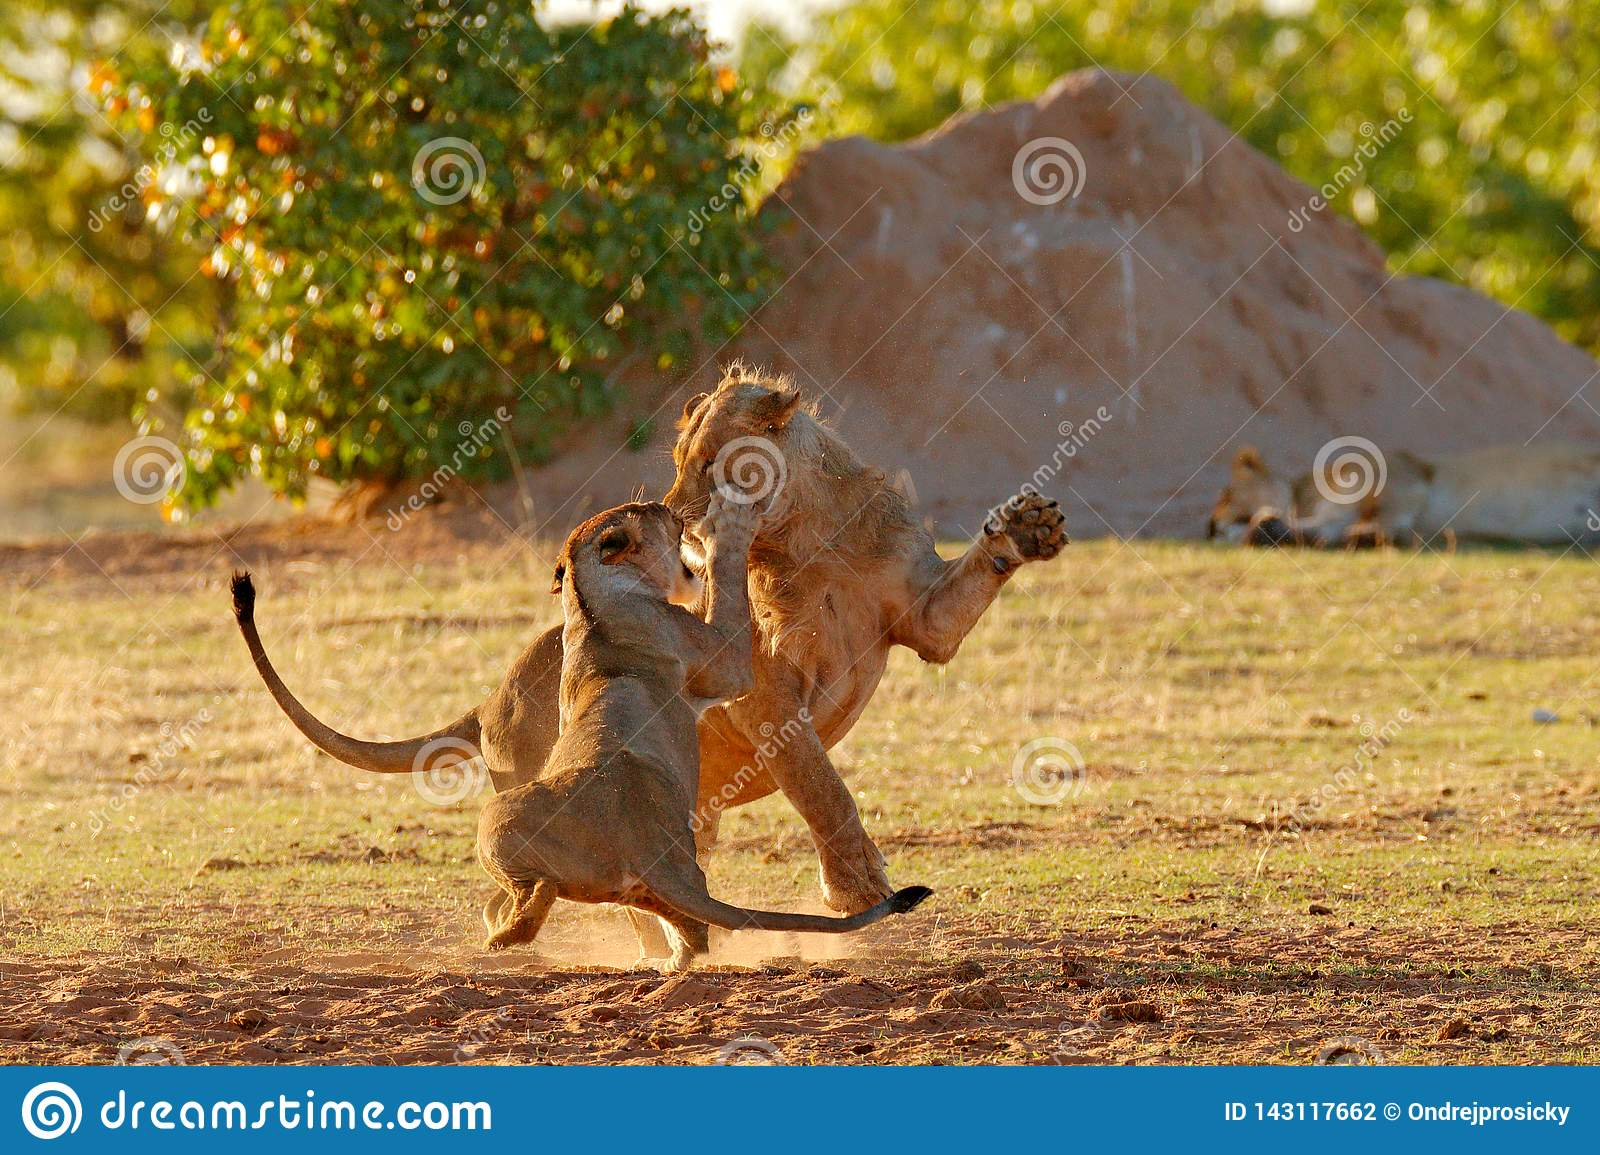 Lions Fight In The Sand  Lion With Open Muzzle  Pair Of African